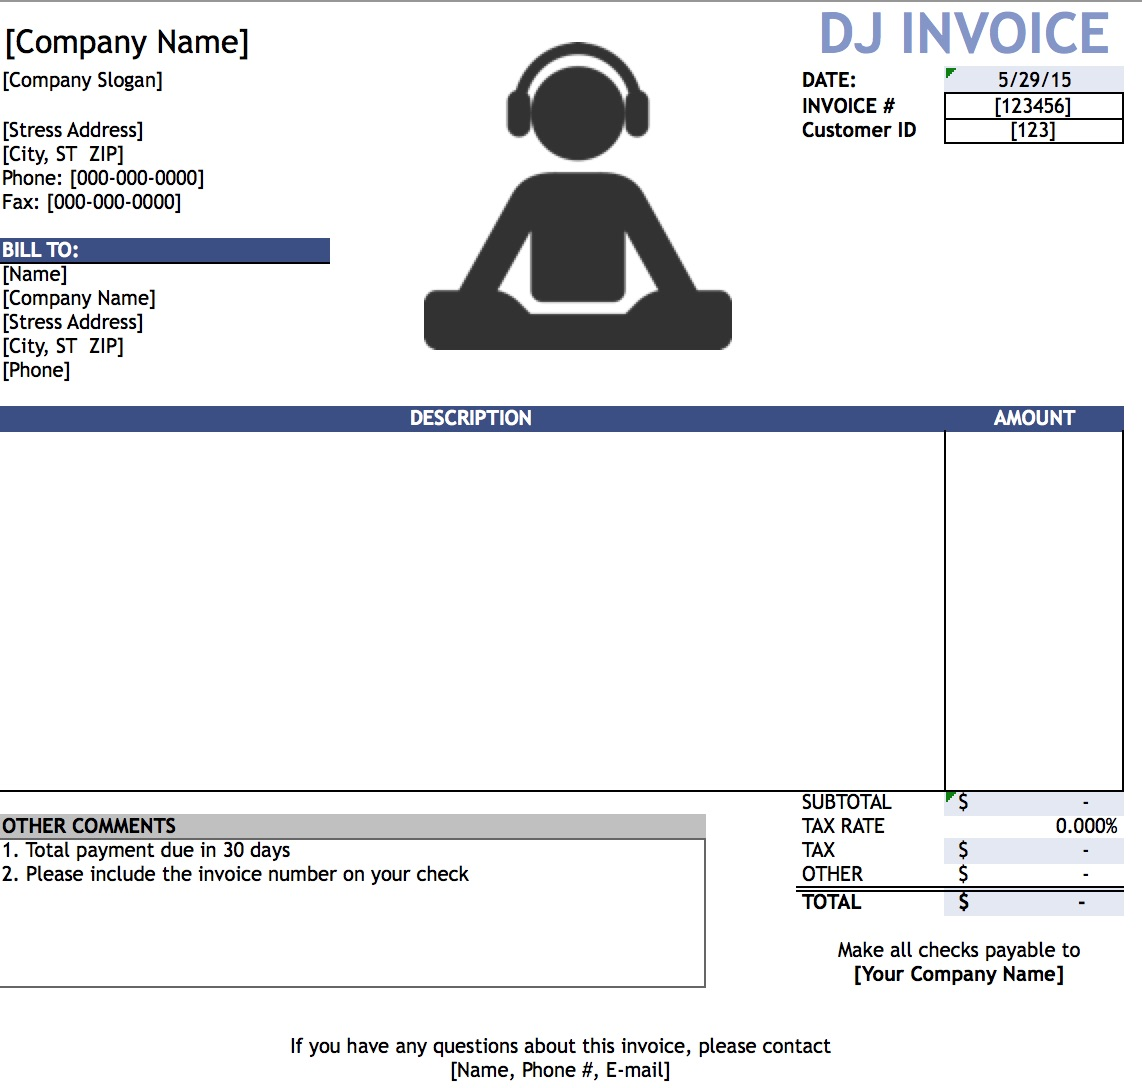 Free DJ Disc Jockey Invoice Template Excel PDF Word Doc - Free invoice application for service business